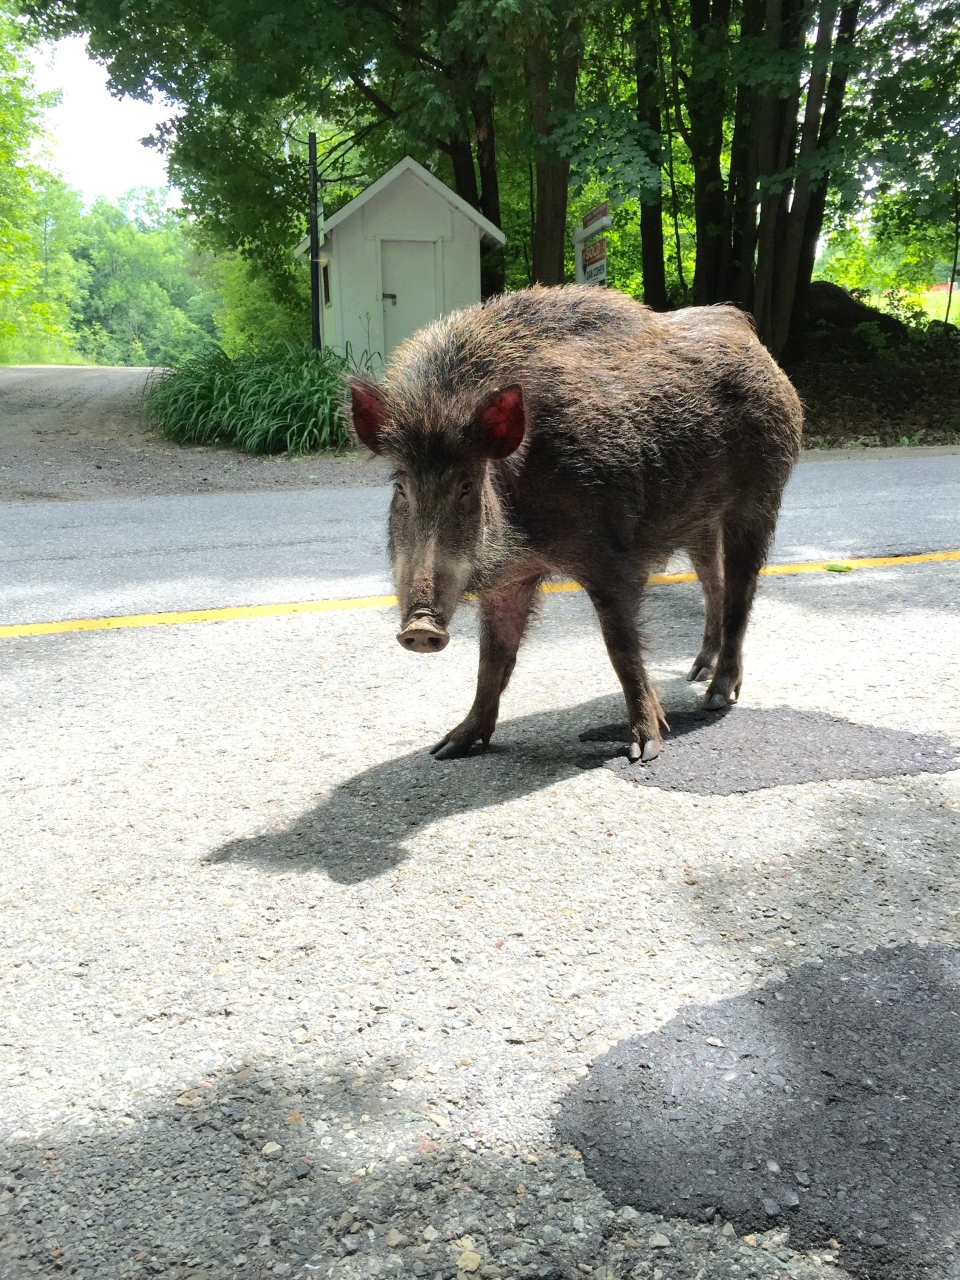 A wild boars can be seen roaming near Caledon East, Ont. on Sunday, July 19, 2015. (Nicole Maglione)